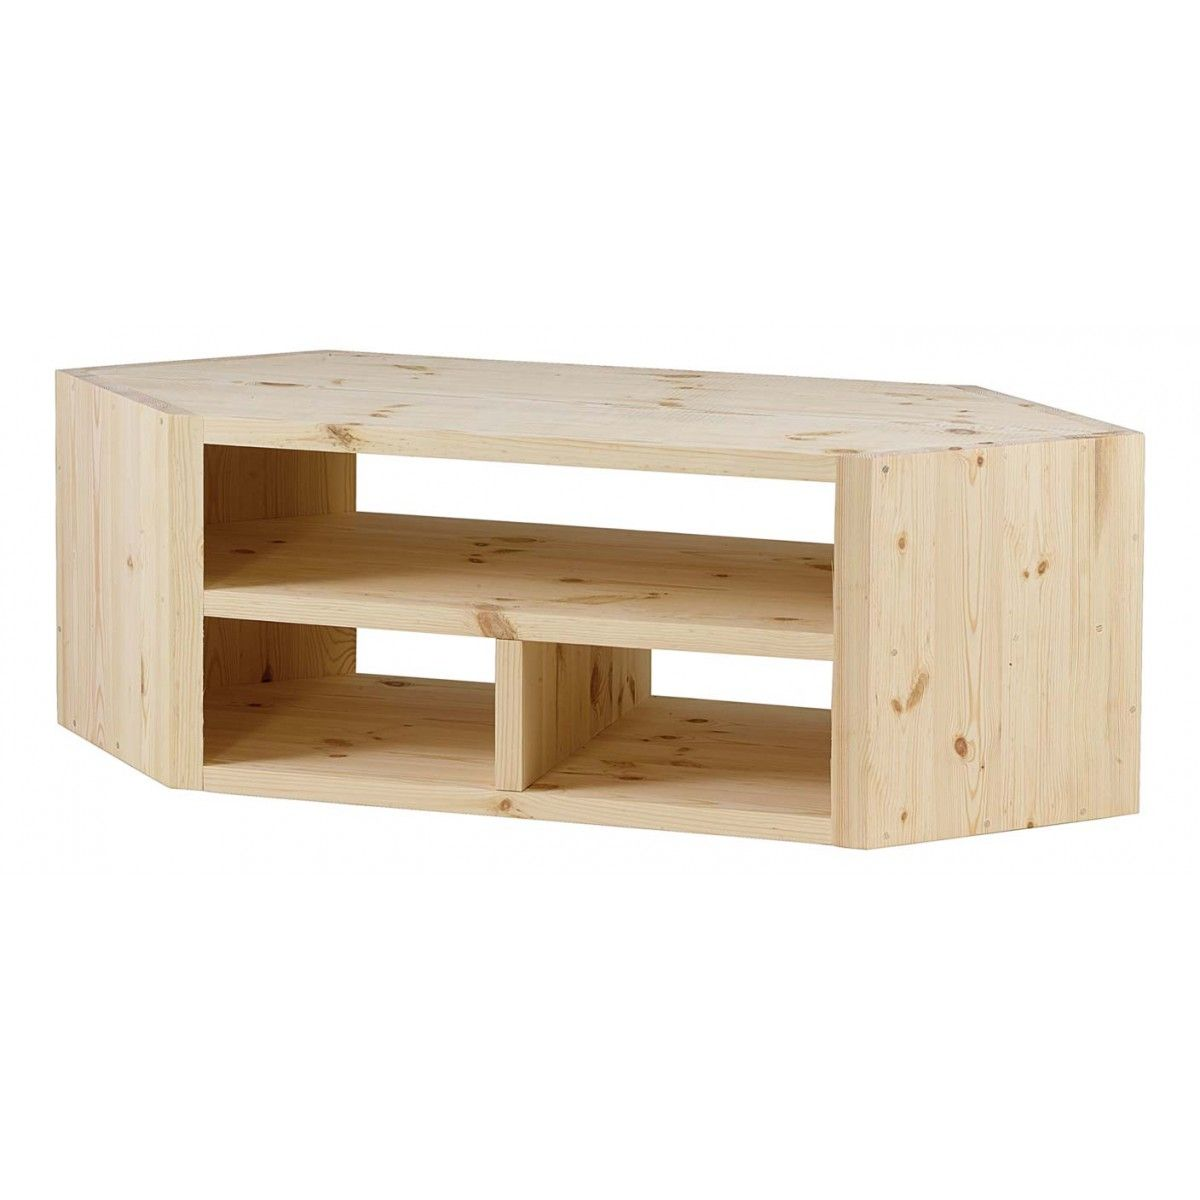 Meuble Tv D Angle Design Pin Massif Brut 3 Niches Matendance  # Meuble Tv En Bois Simple Et Leur Plan